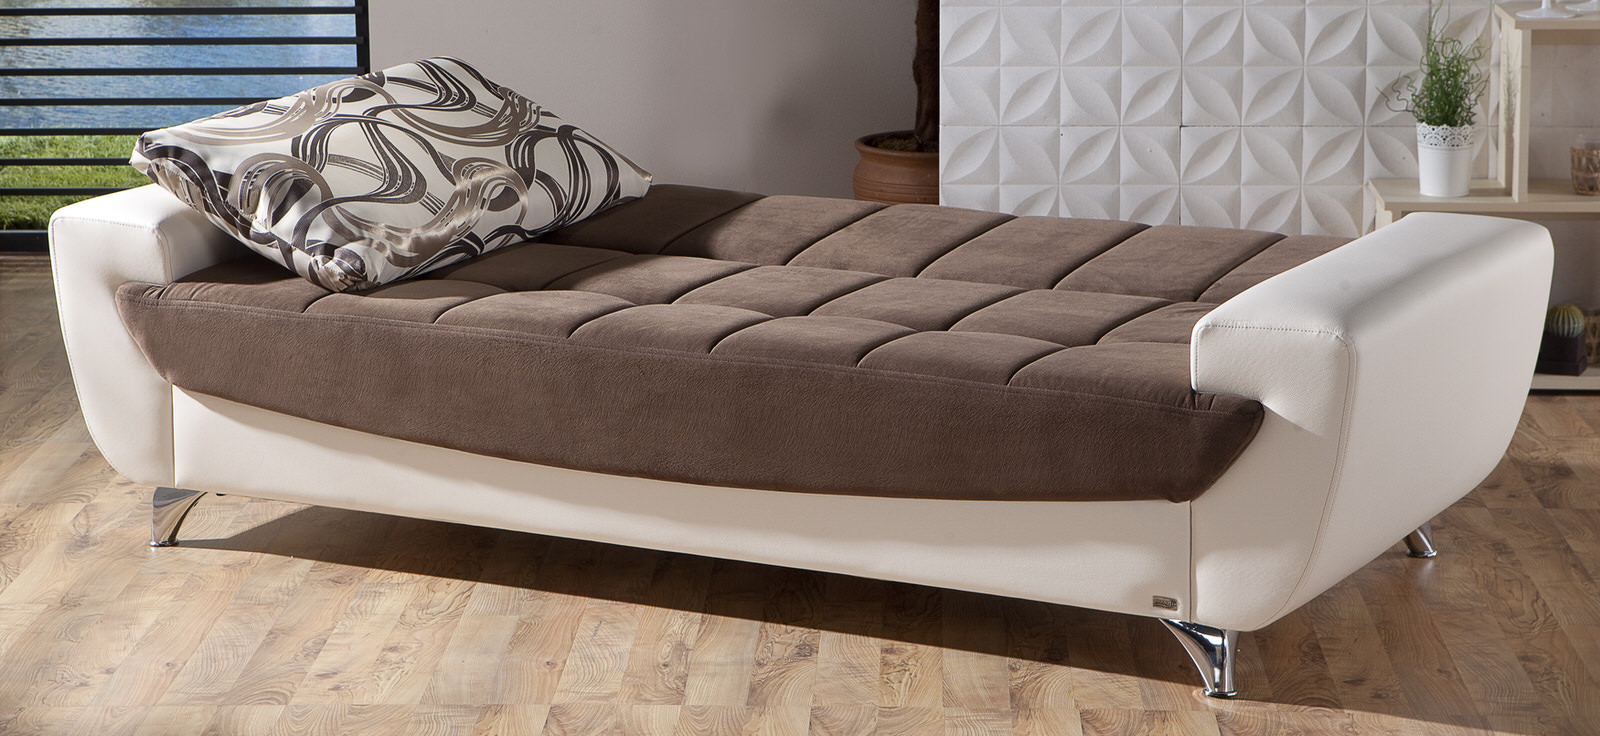 High quality sofa beds sofa beds ligne roset official site for Best divan beds